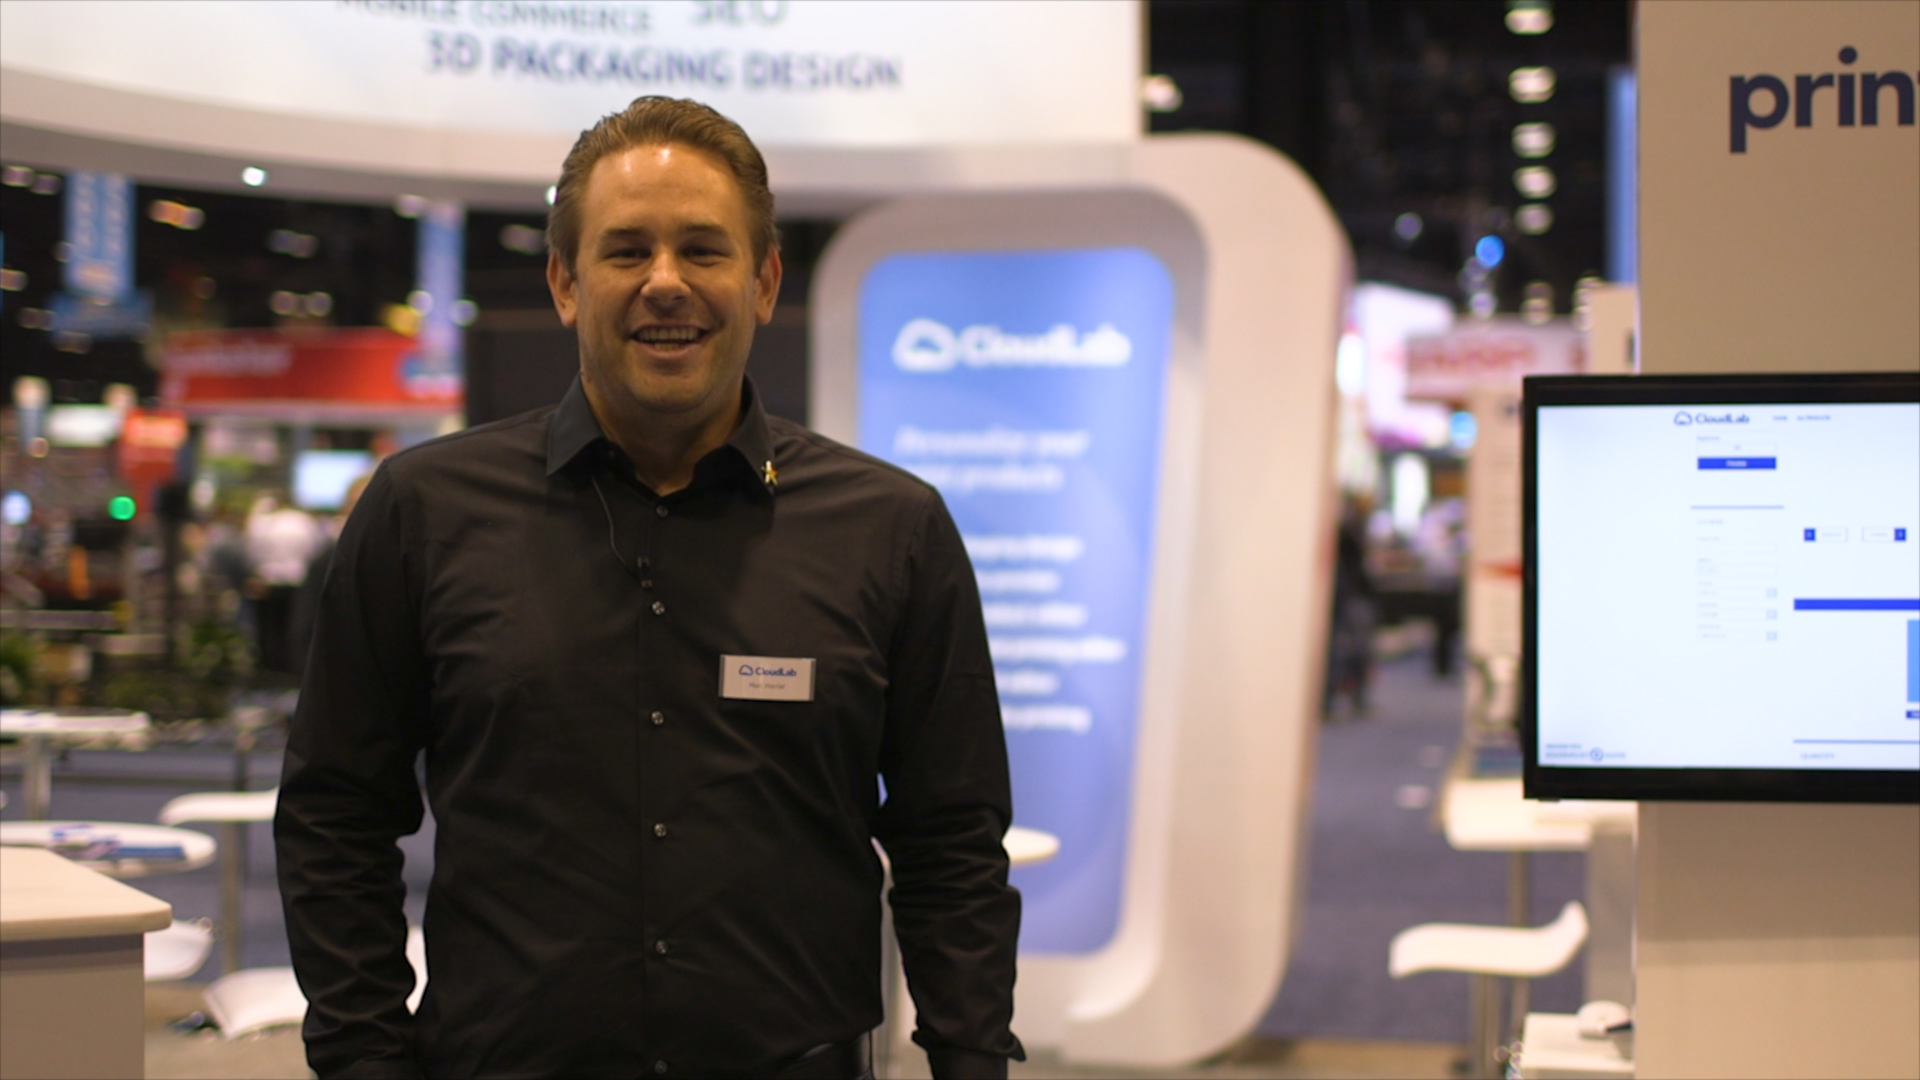 CloudLab's Tailor-Made Web-to-Print Solutions